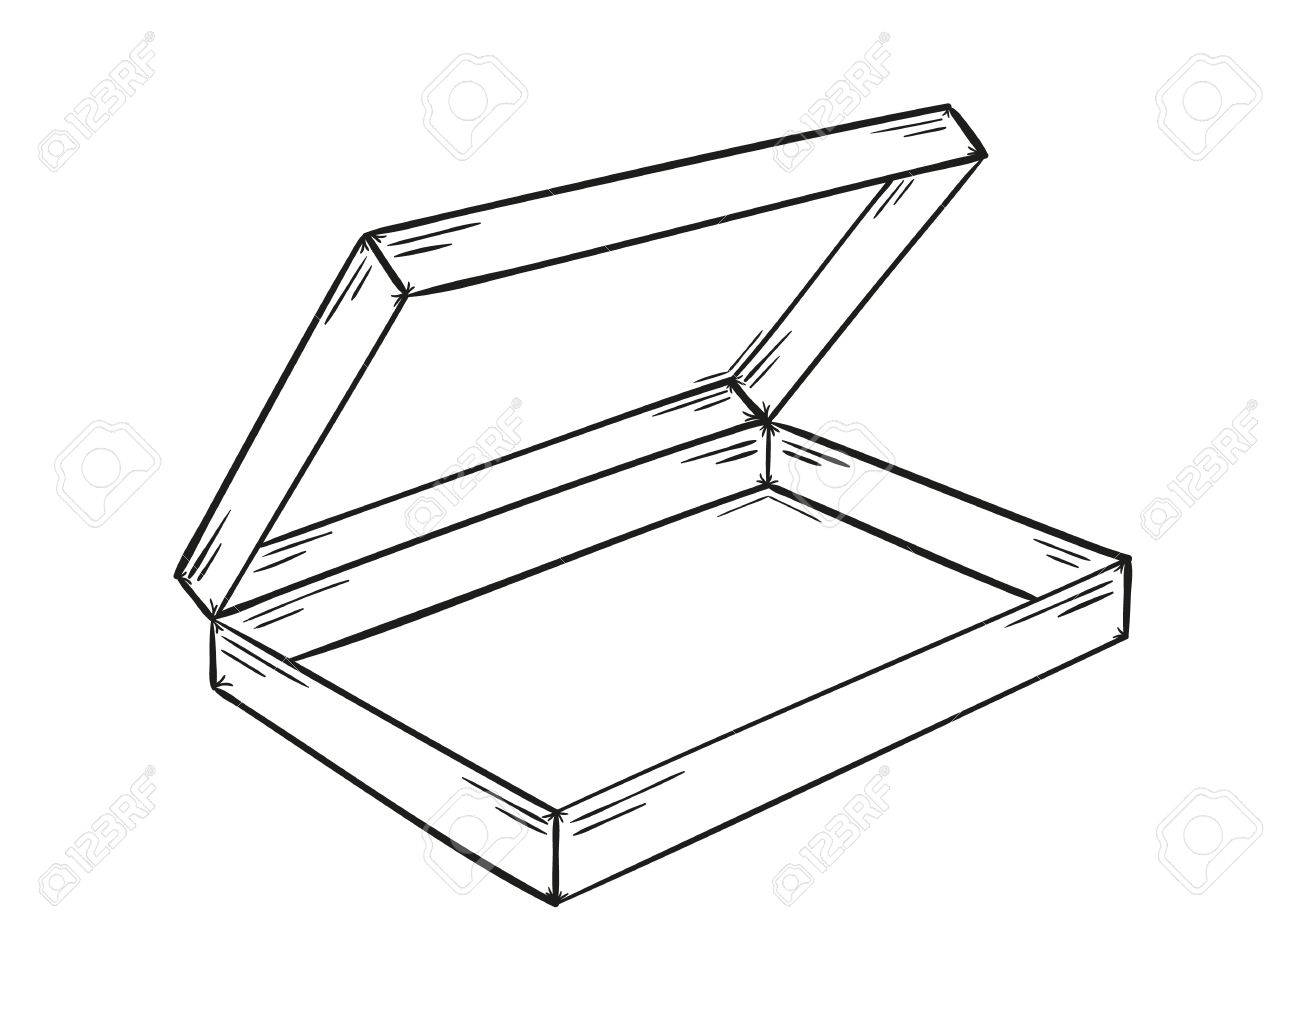 1300x1012 Sketch Of The Empty Paper Box On White Background, Isolated